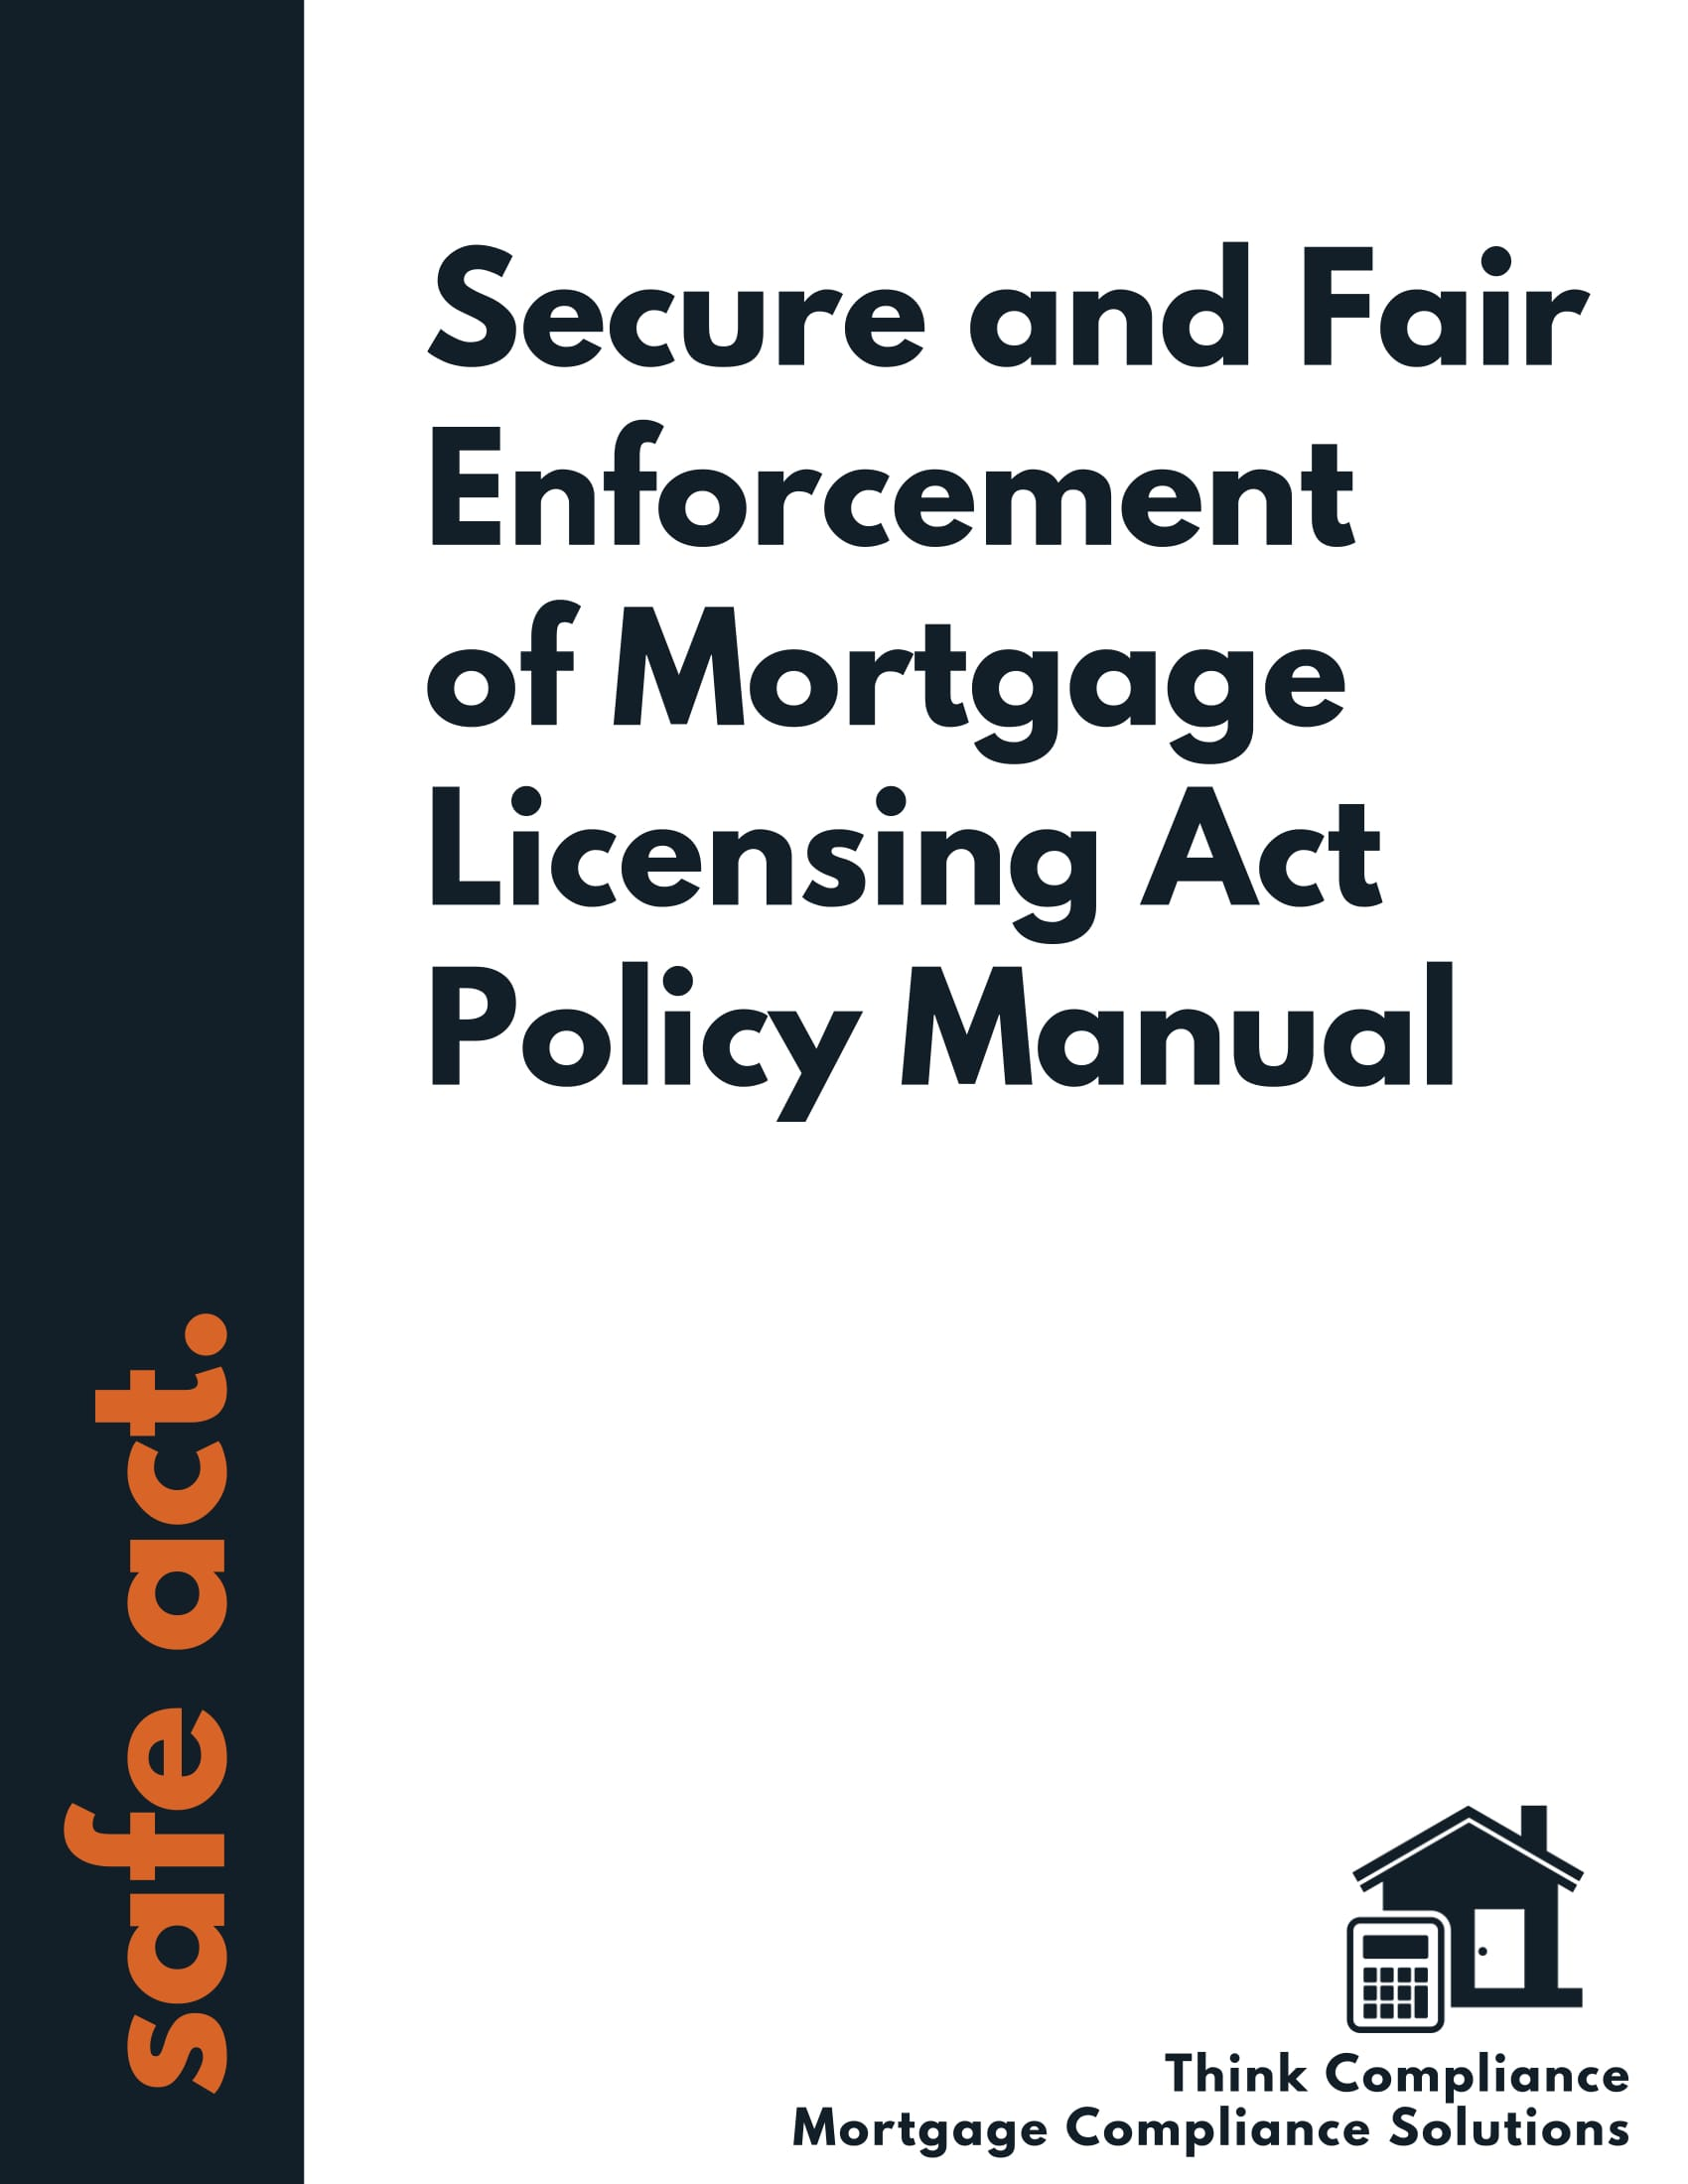 what is a policy manual